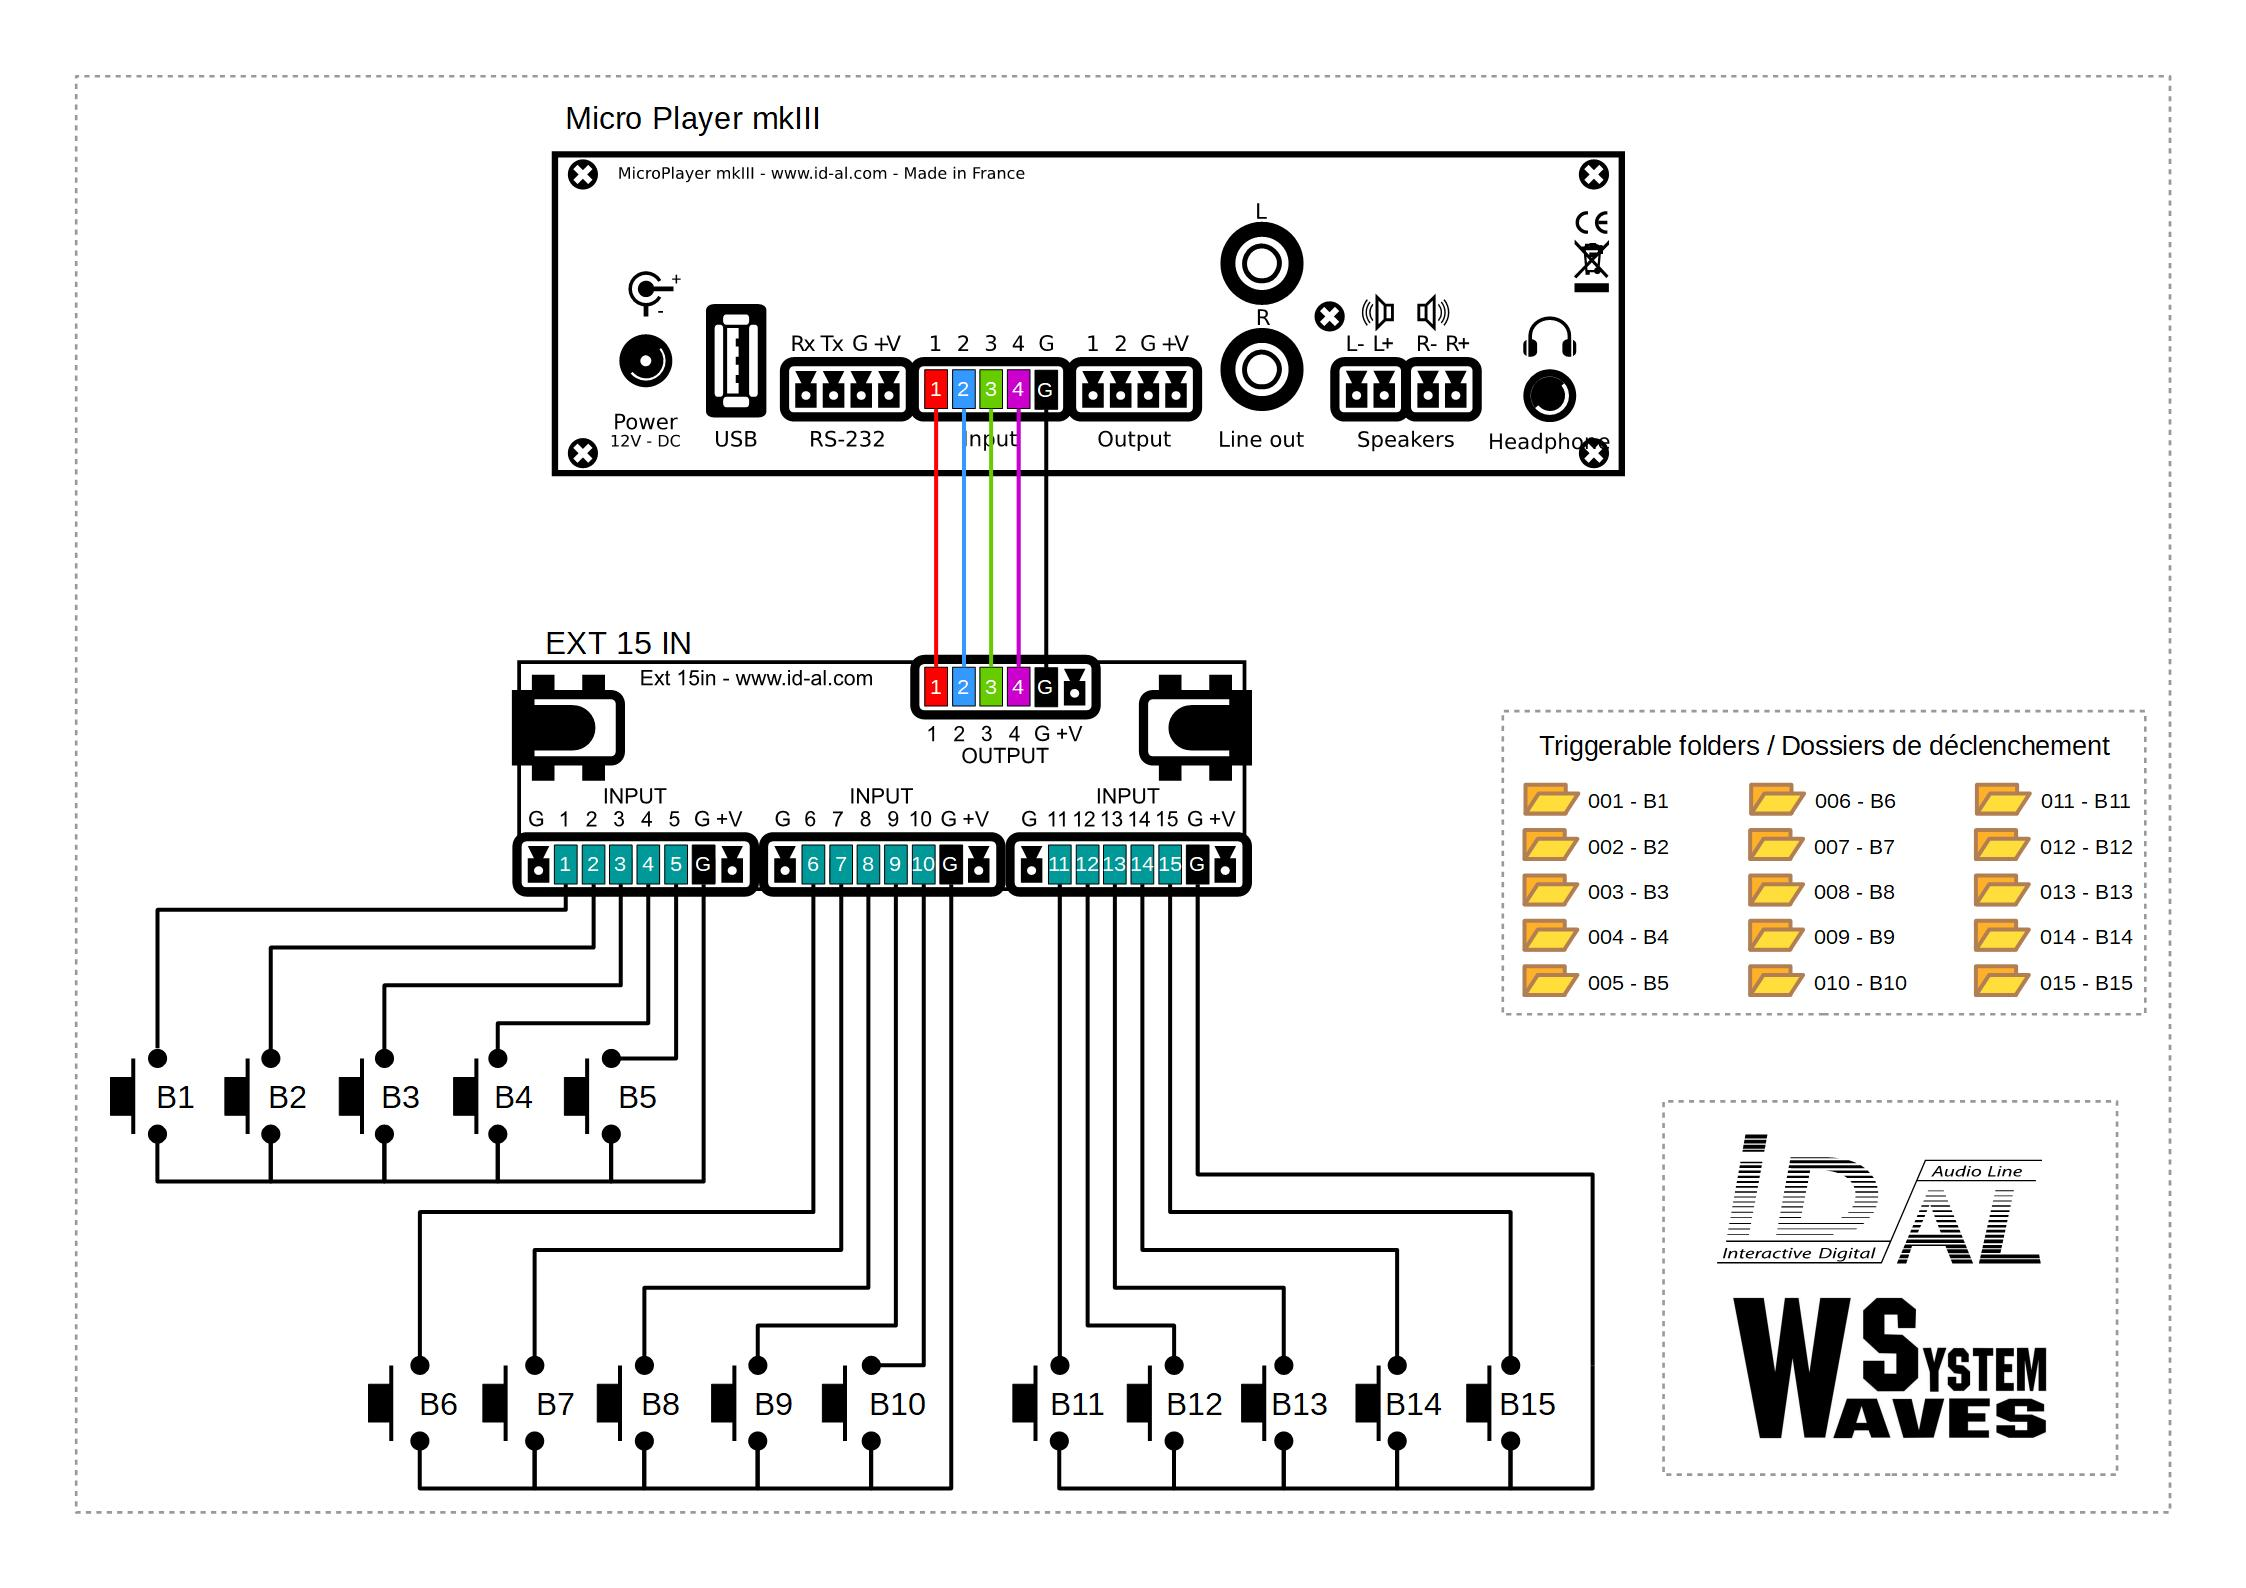 wiring diagram for micro player mkiii - connection of 15 push buttons with  a ext15 in extension board